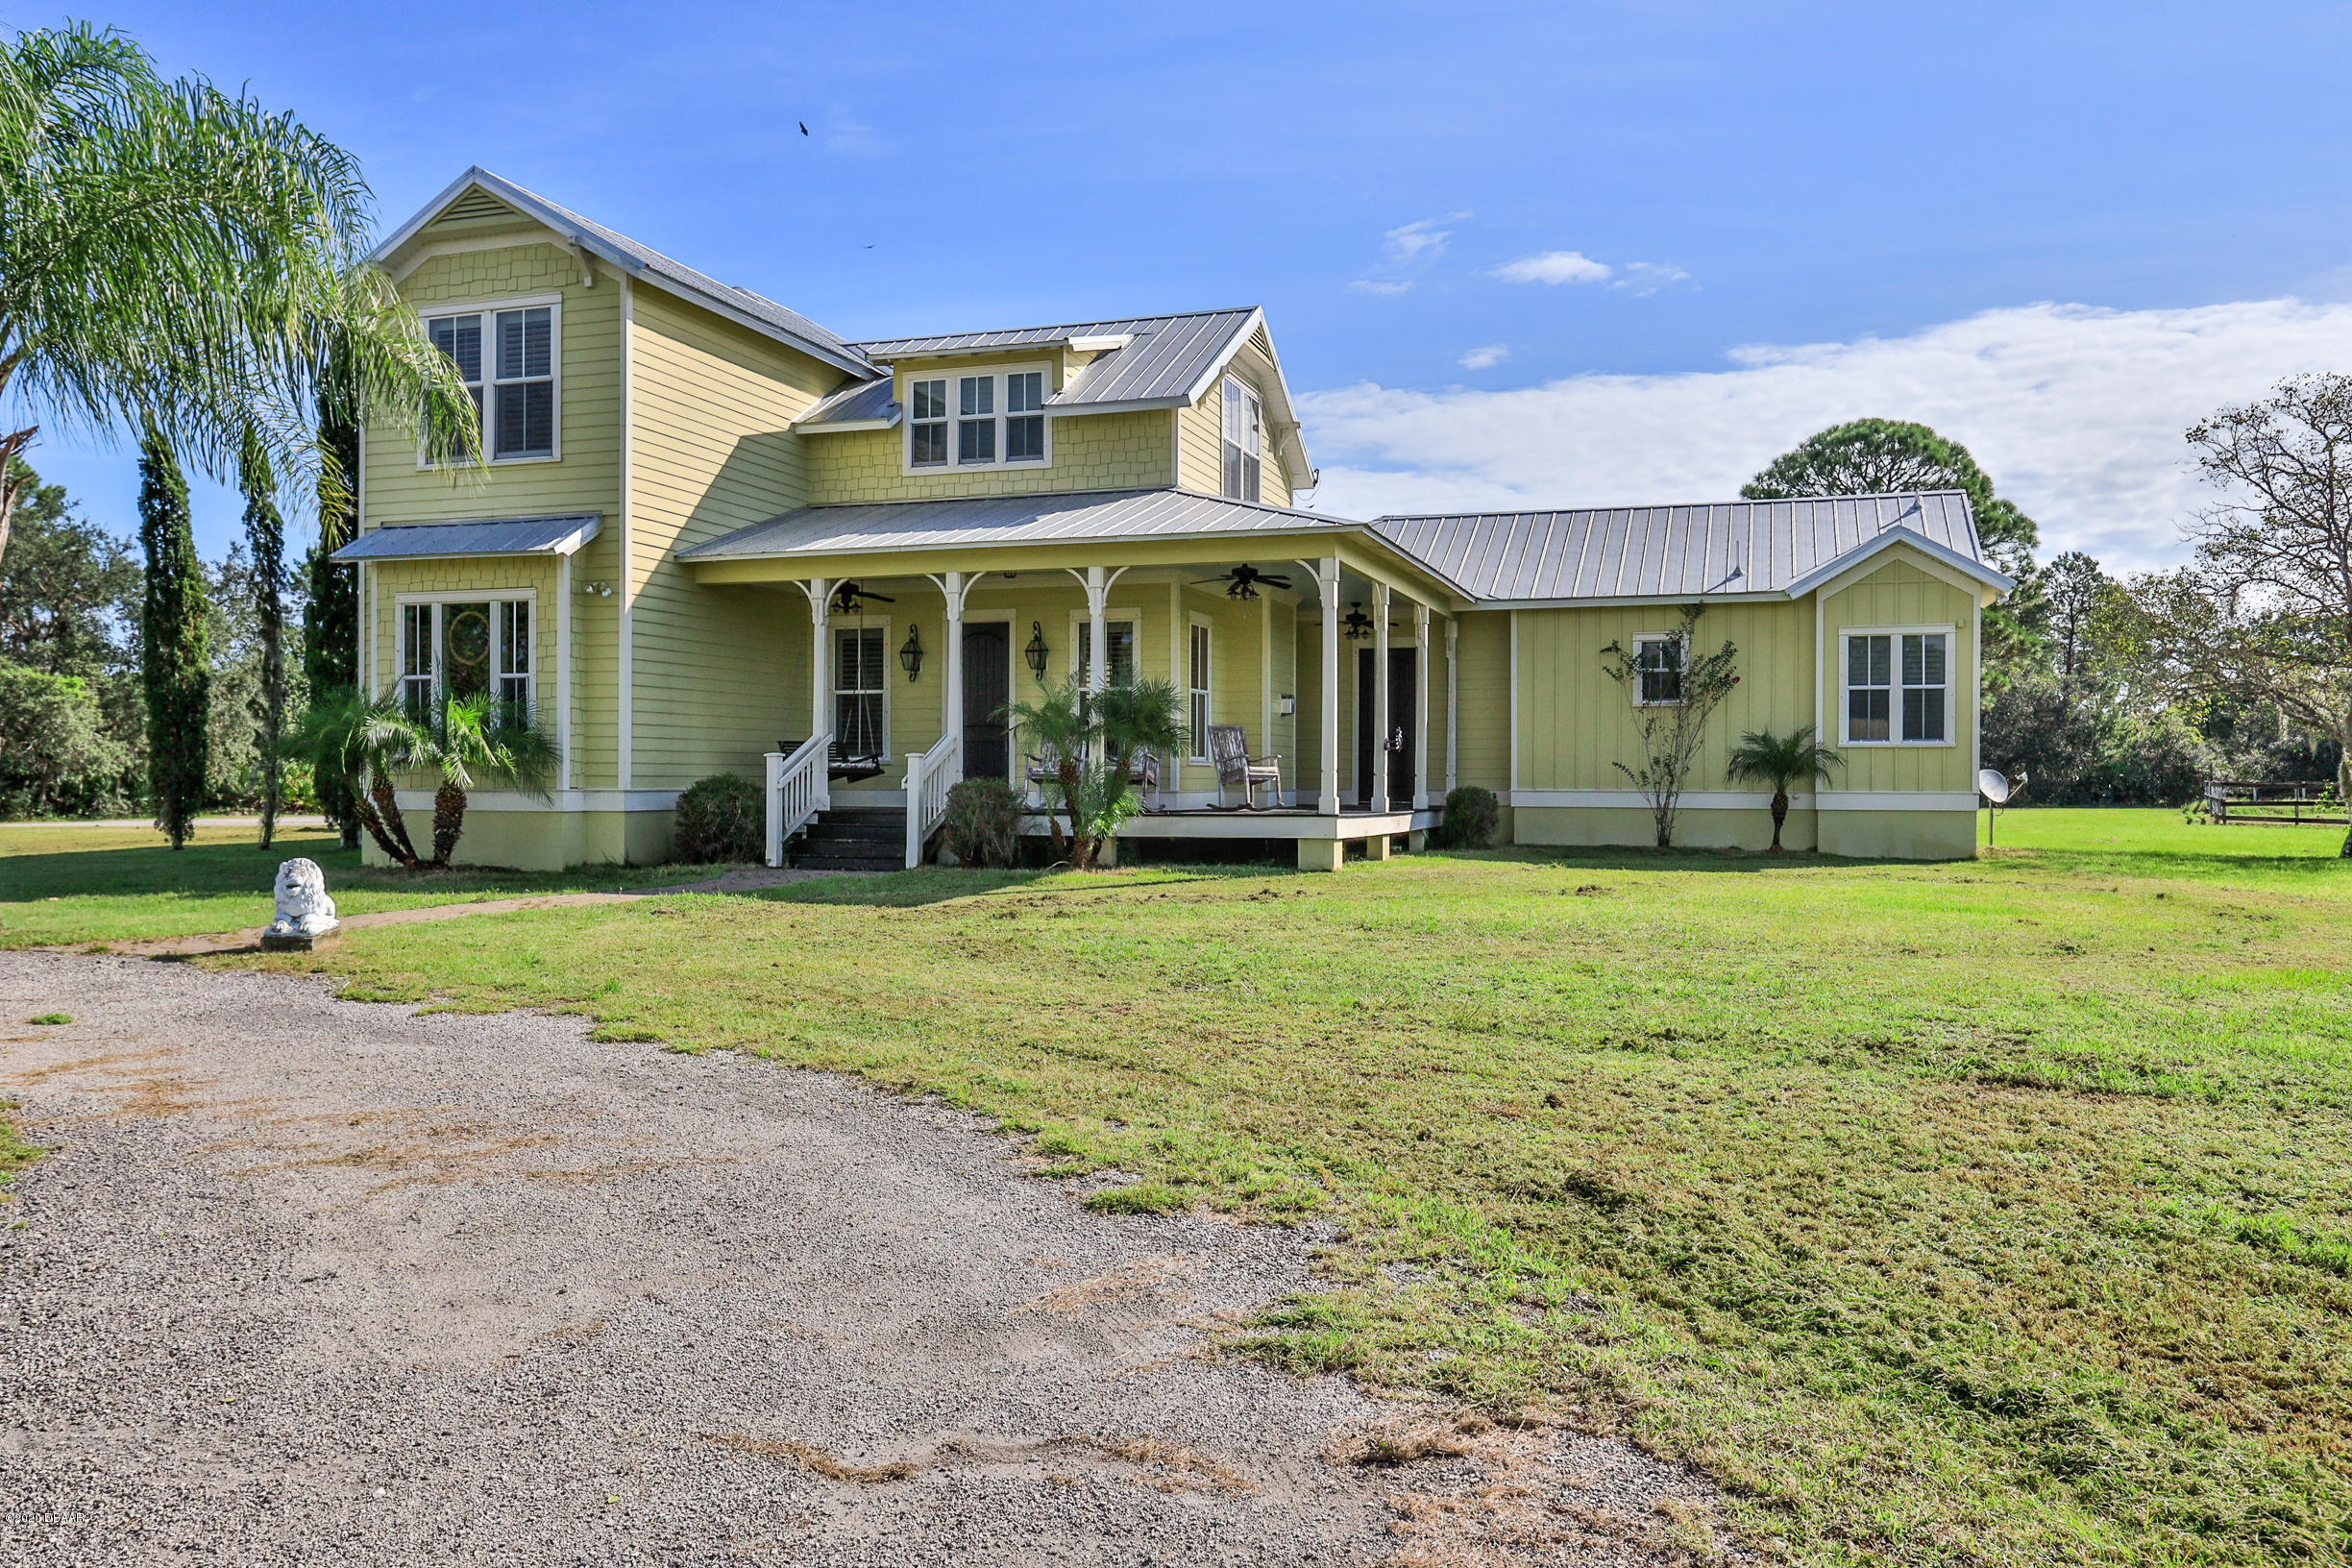 Photo of 4142 Treadway Road, New Smyrna Beach, FL 32168